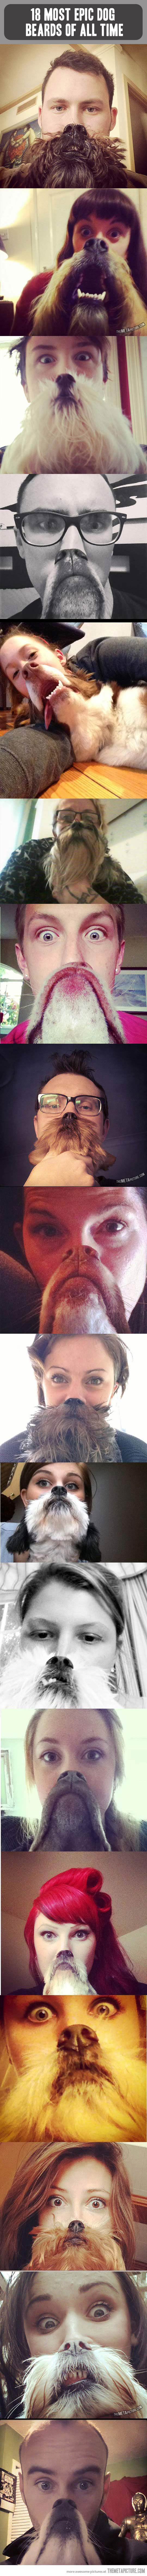 DOG BEARDS! (Image from thematapicture)